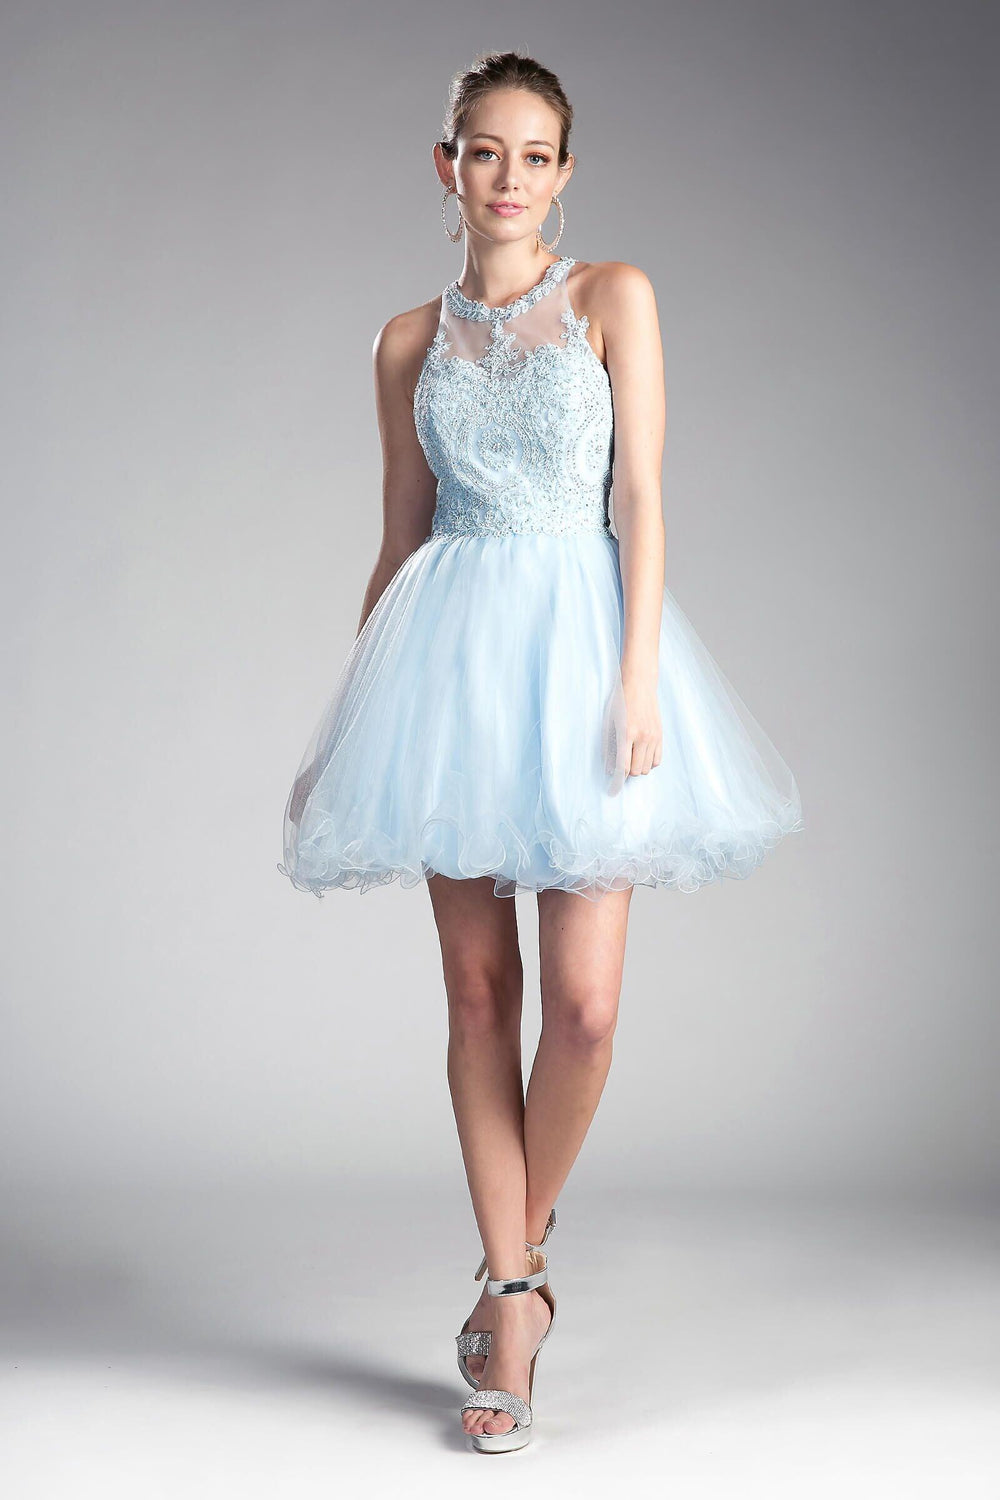 Short Prom Halter Neck Homecoming Dress - The Dress Outlet Baby Blue